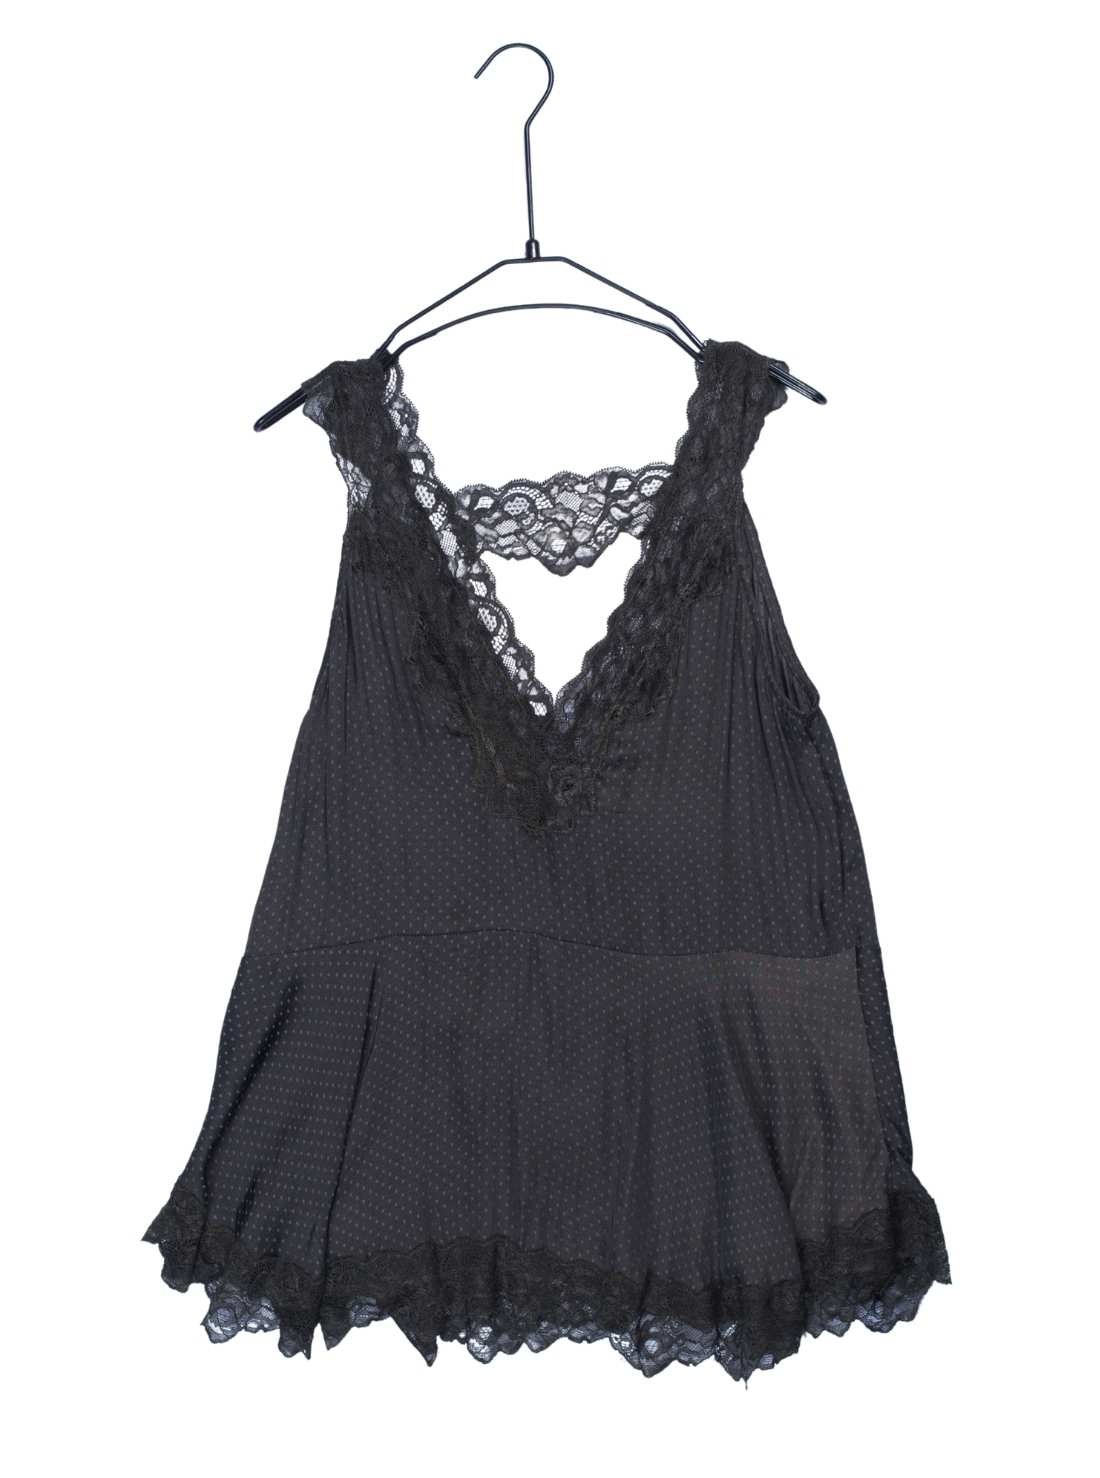 Polyester Silky Jaquard Tank Top with Lace Trime at Neck and Bottom